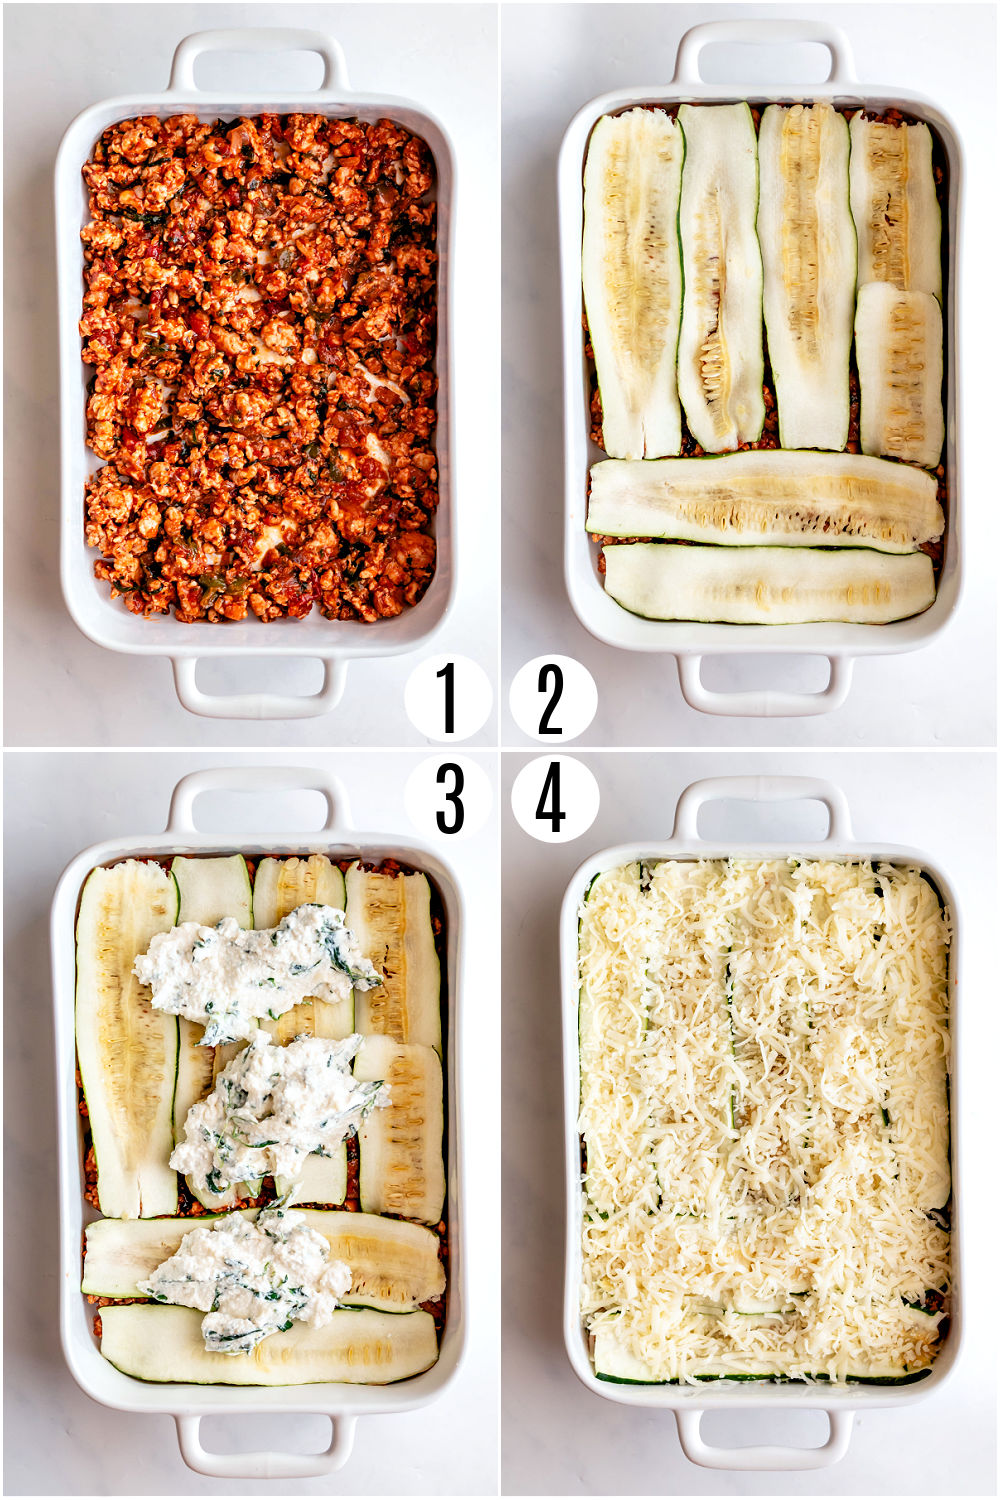 Step by step photos showing how to assemble zucchini lasagna.